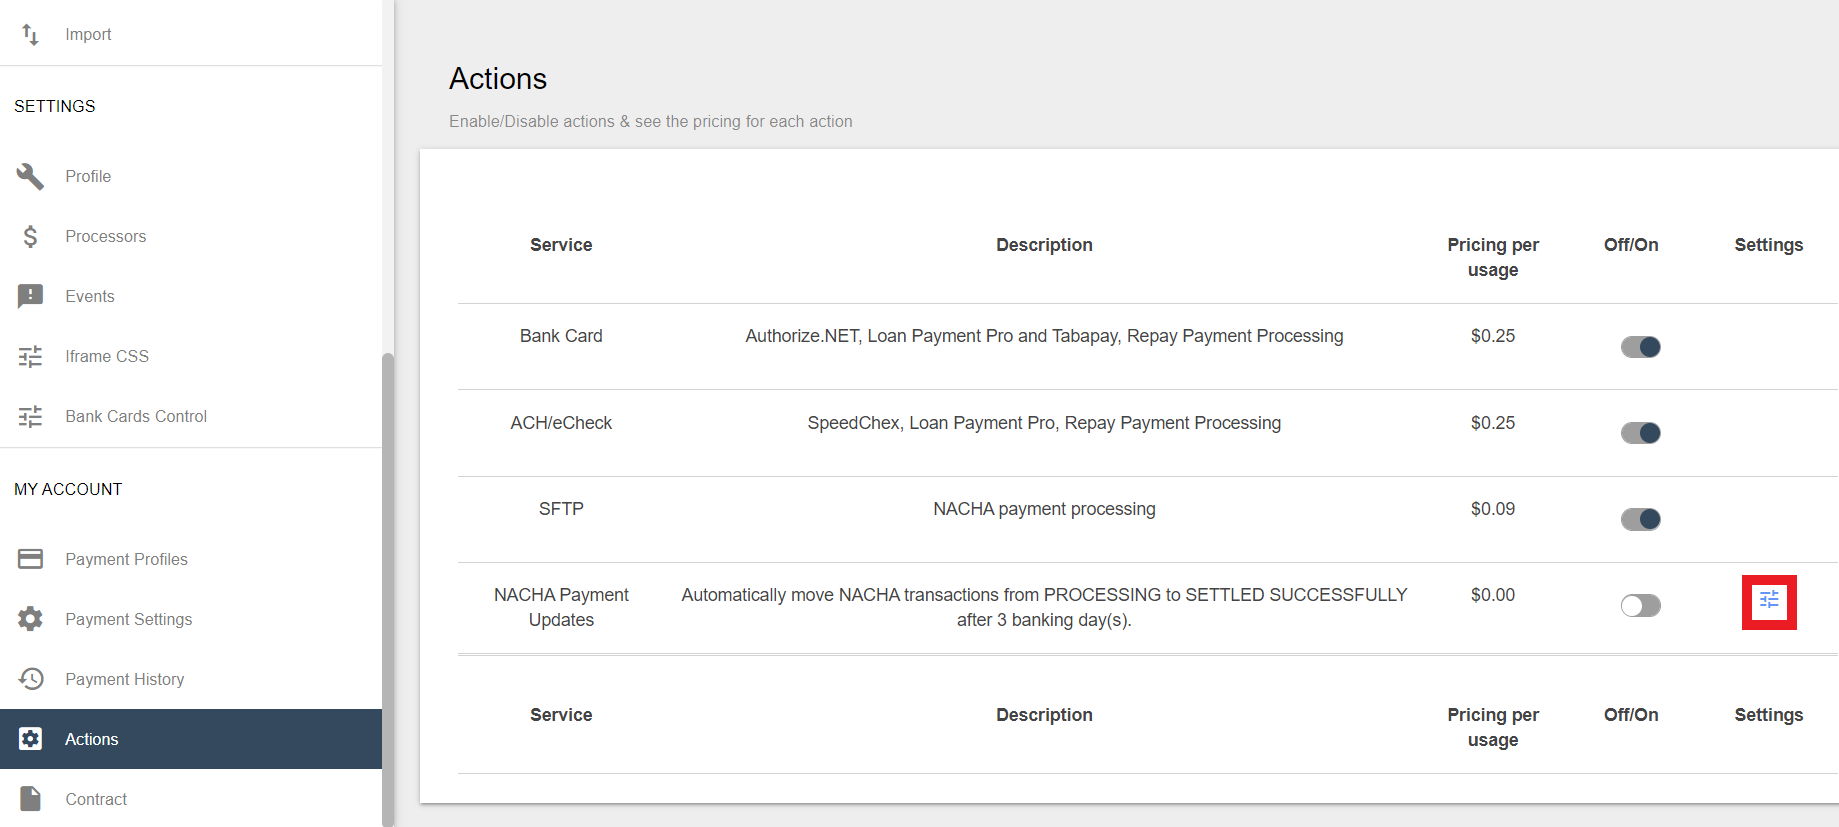 The actions page in Secure Payments. A small box highlights the settings switches on the right of NACHA Payment Updates.